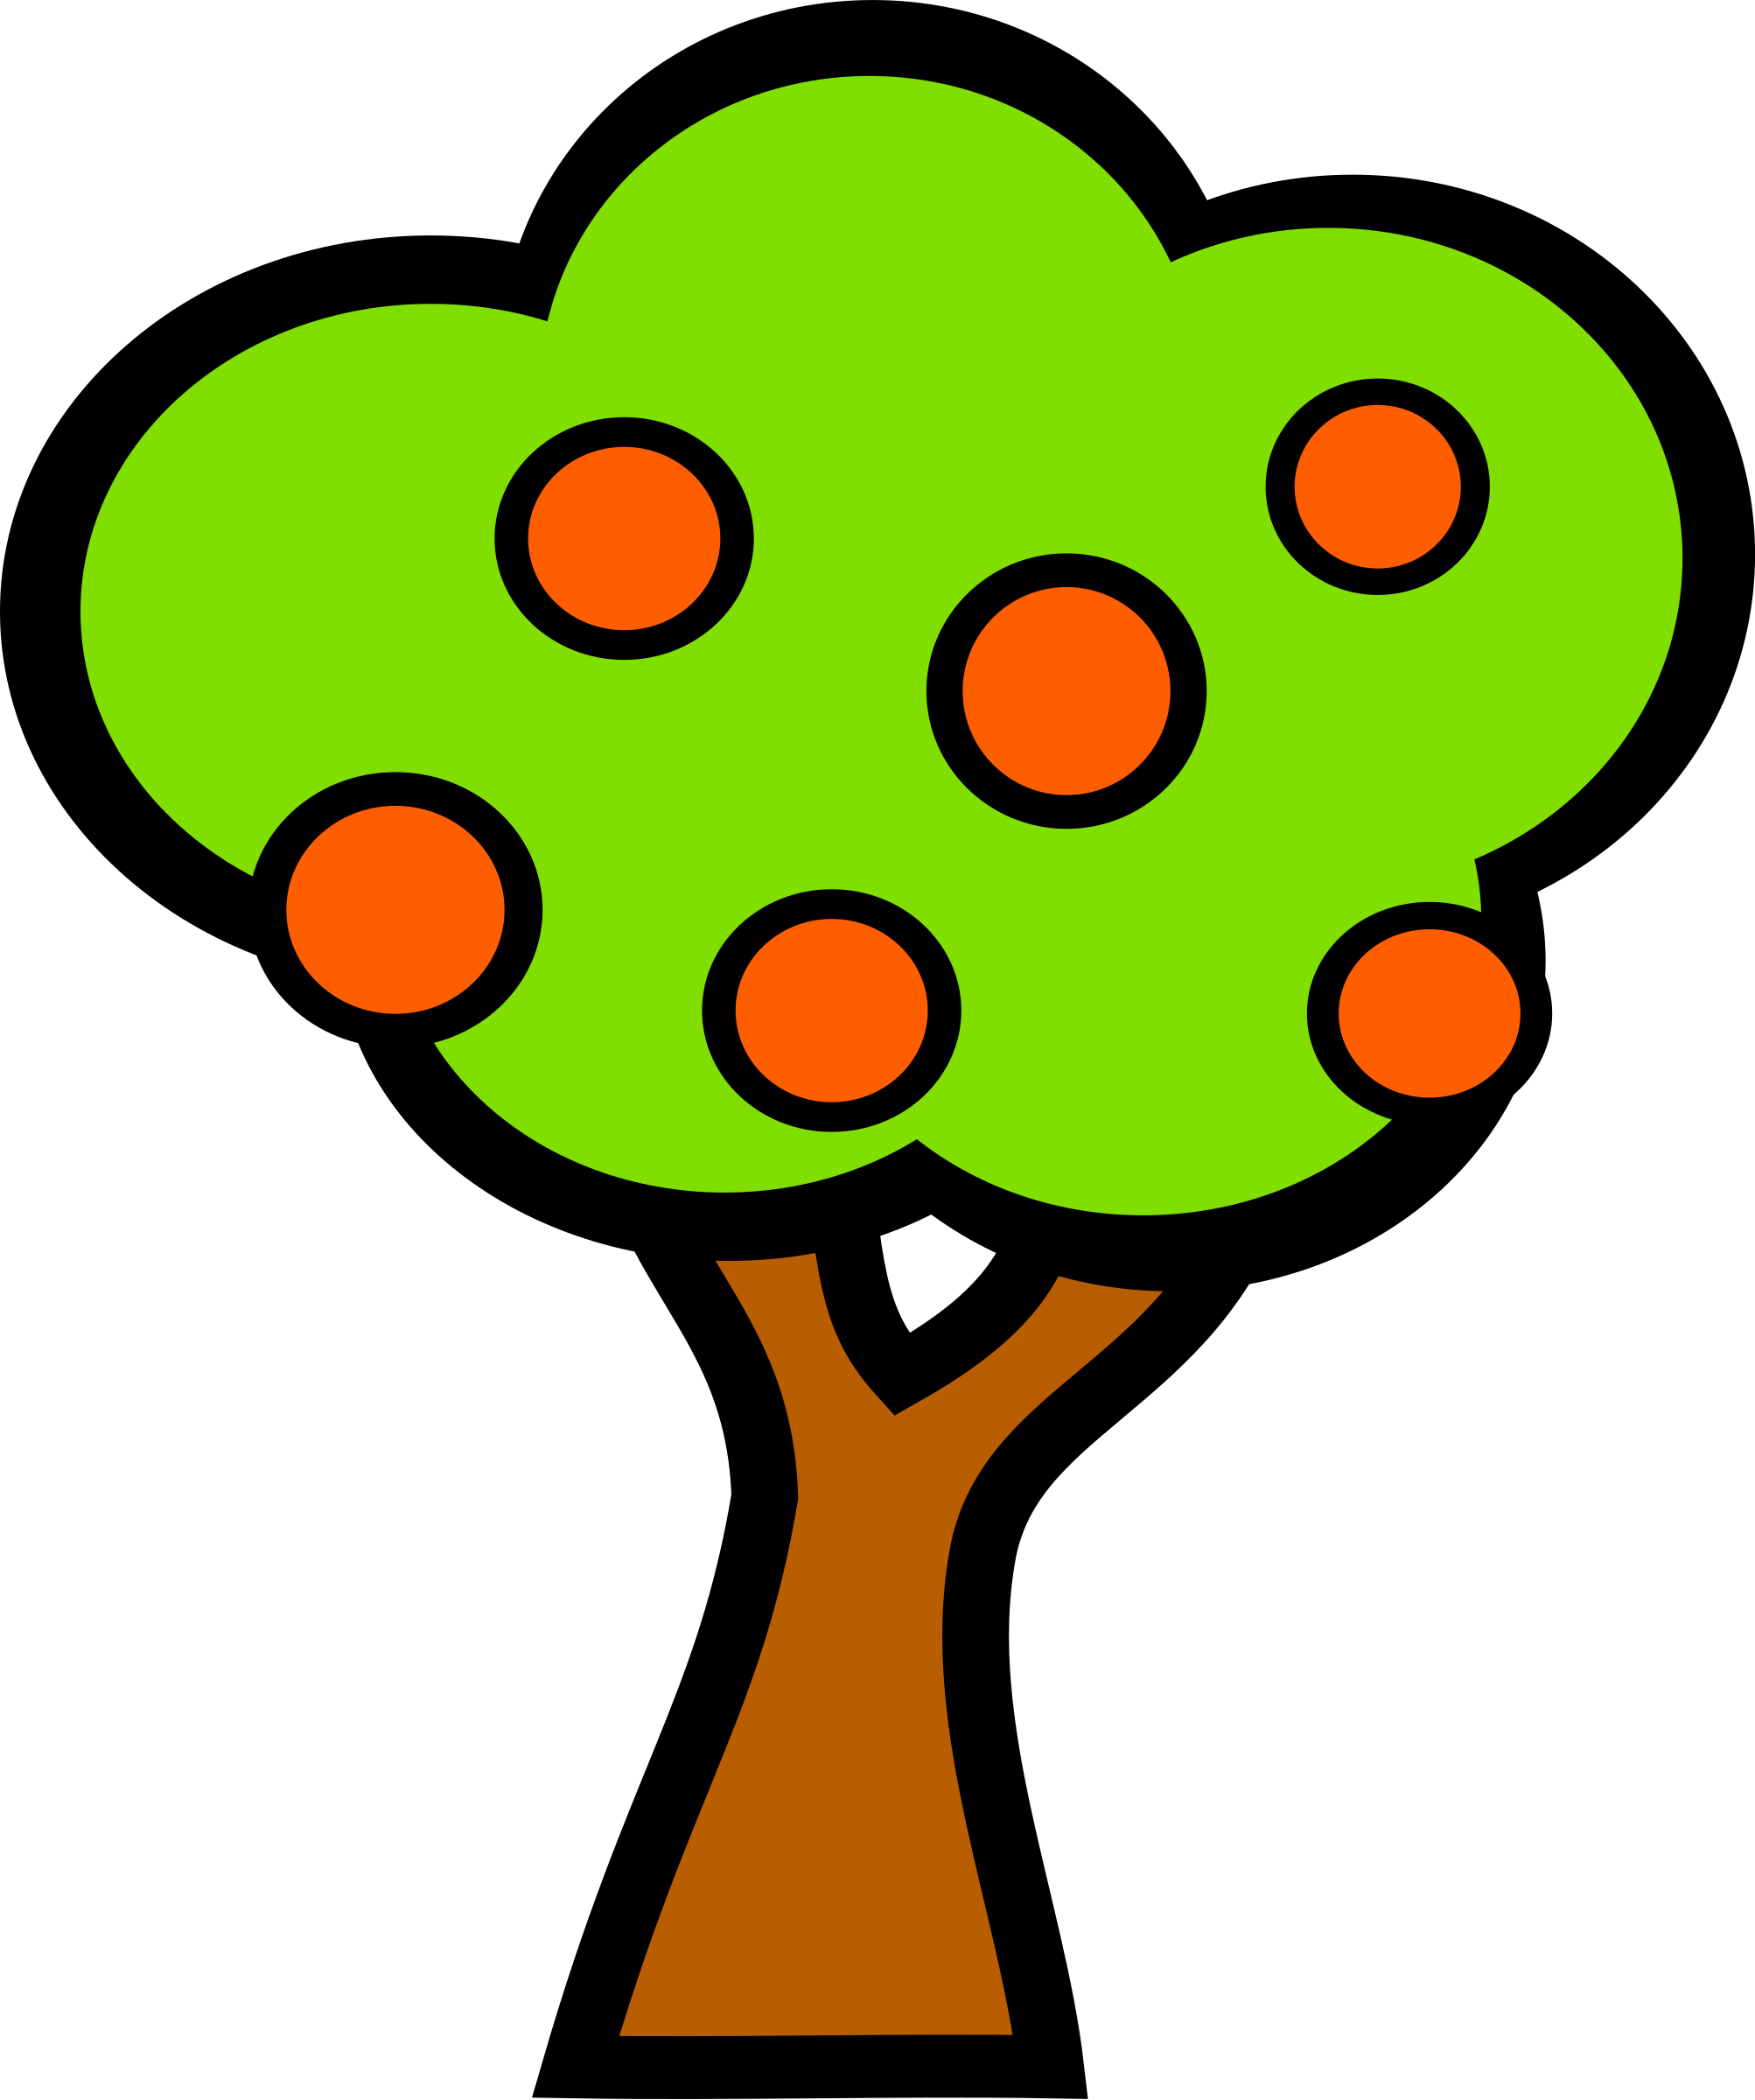 Tree clipart fruit. With fruits big image